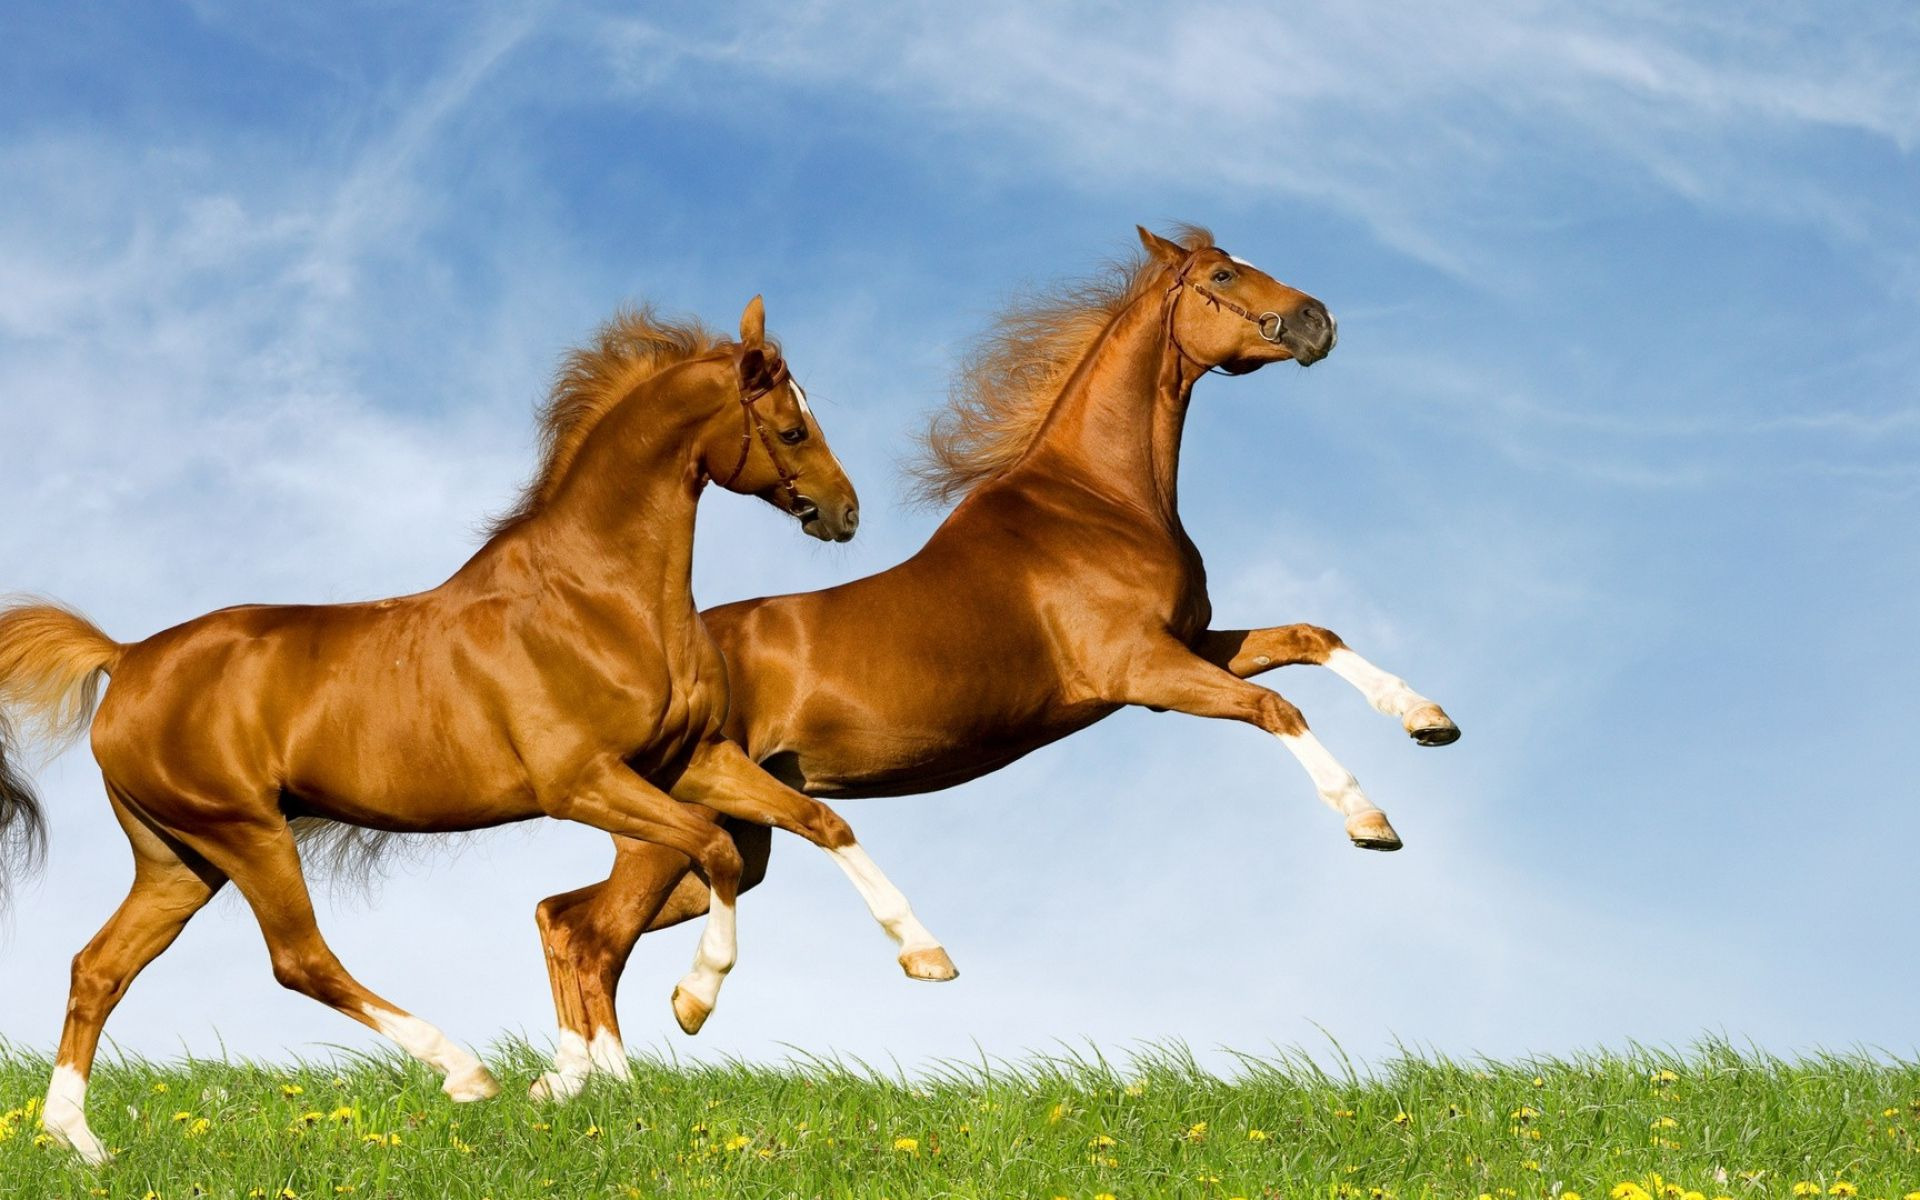 Two Happy Horses Jumping Hd Wallpaper Download Wallpapers Pictures Photos Horses Horse Wallpaper Beautiful Horses